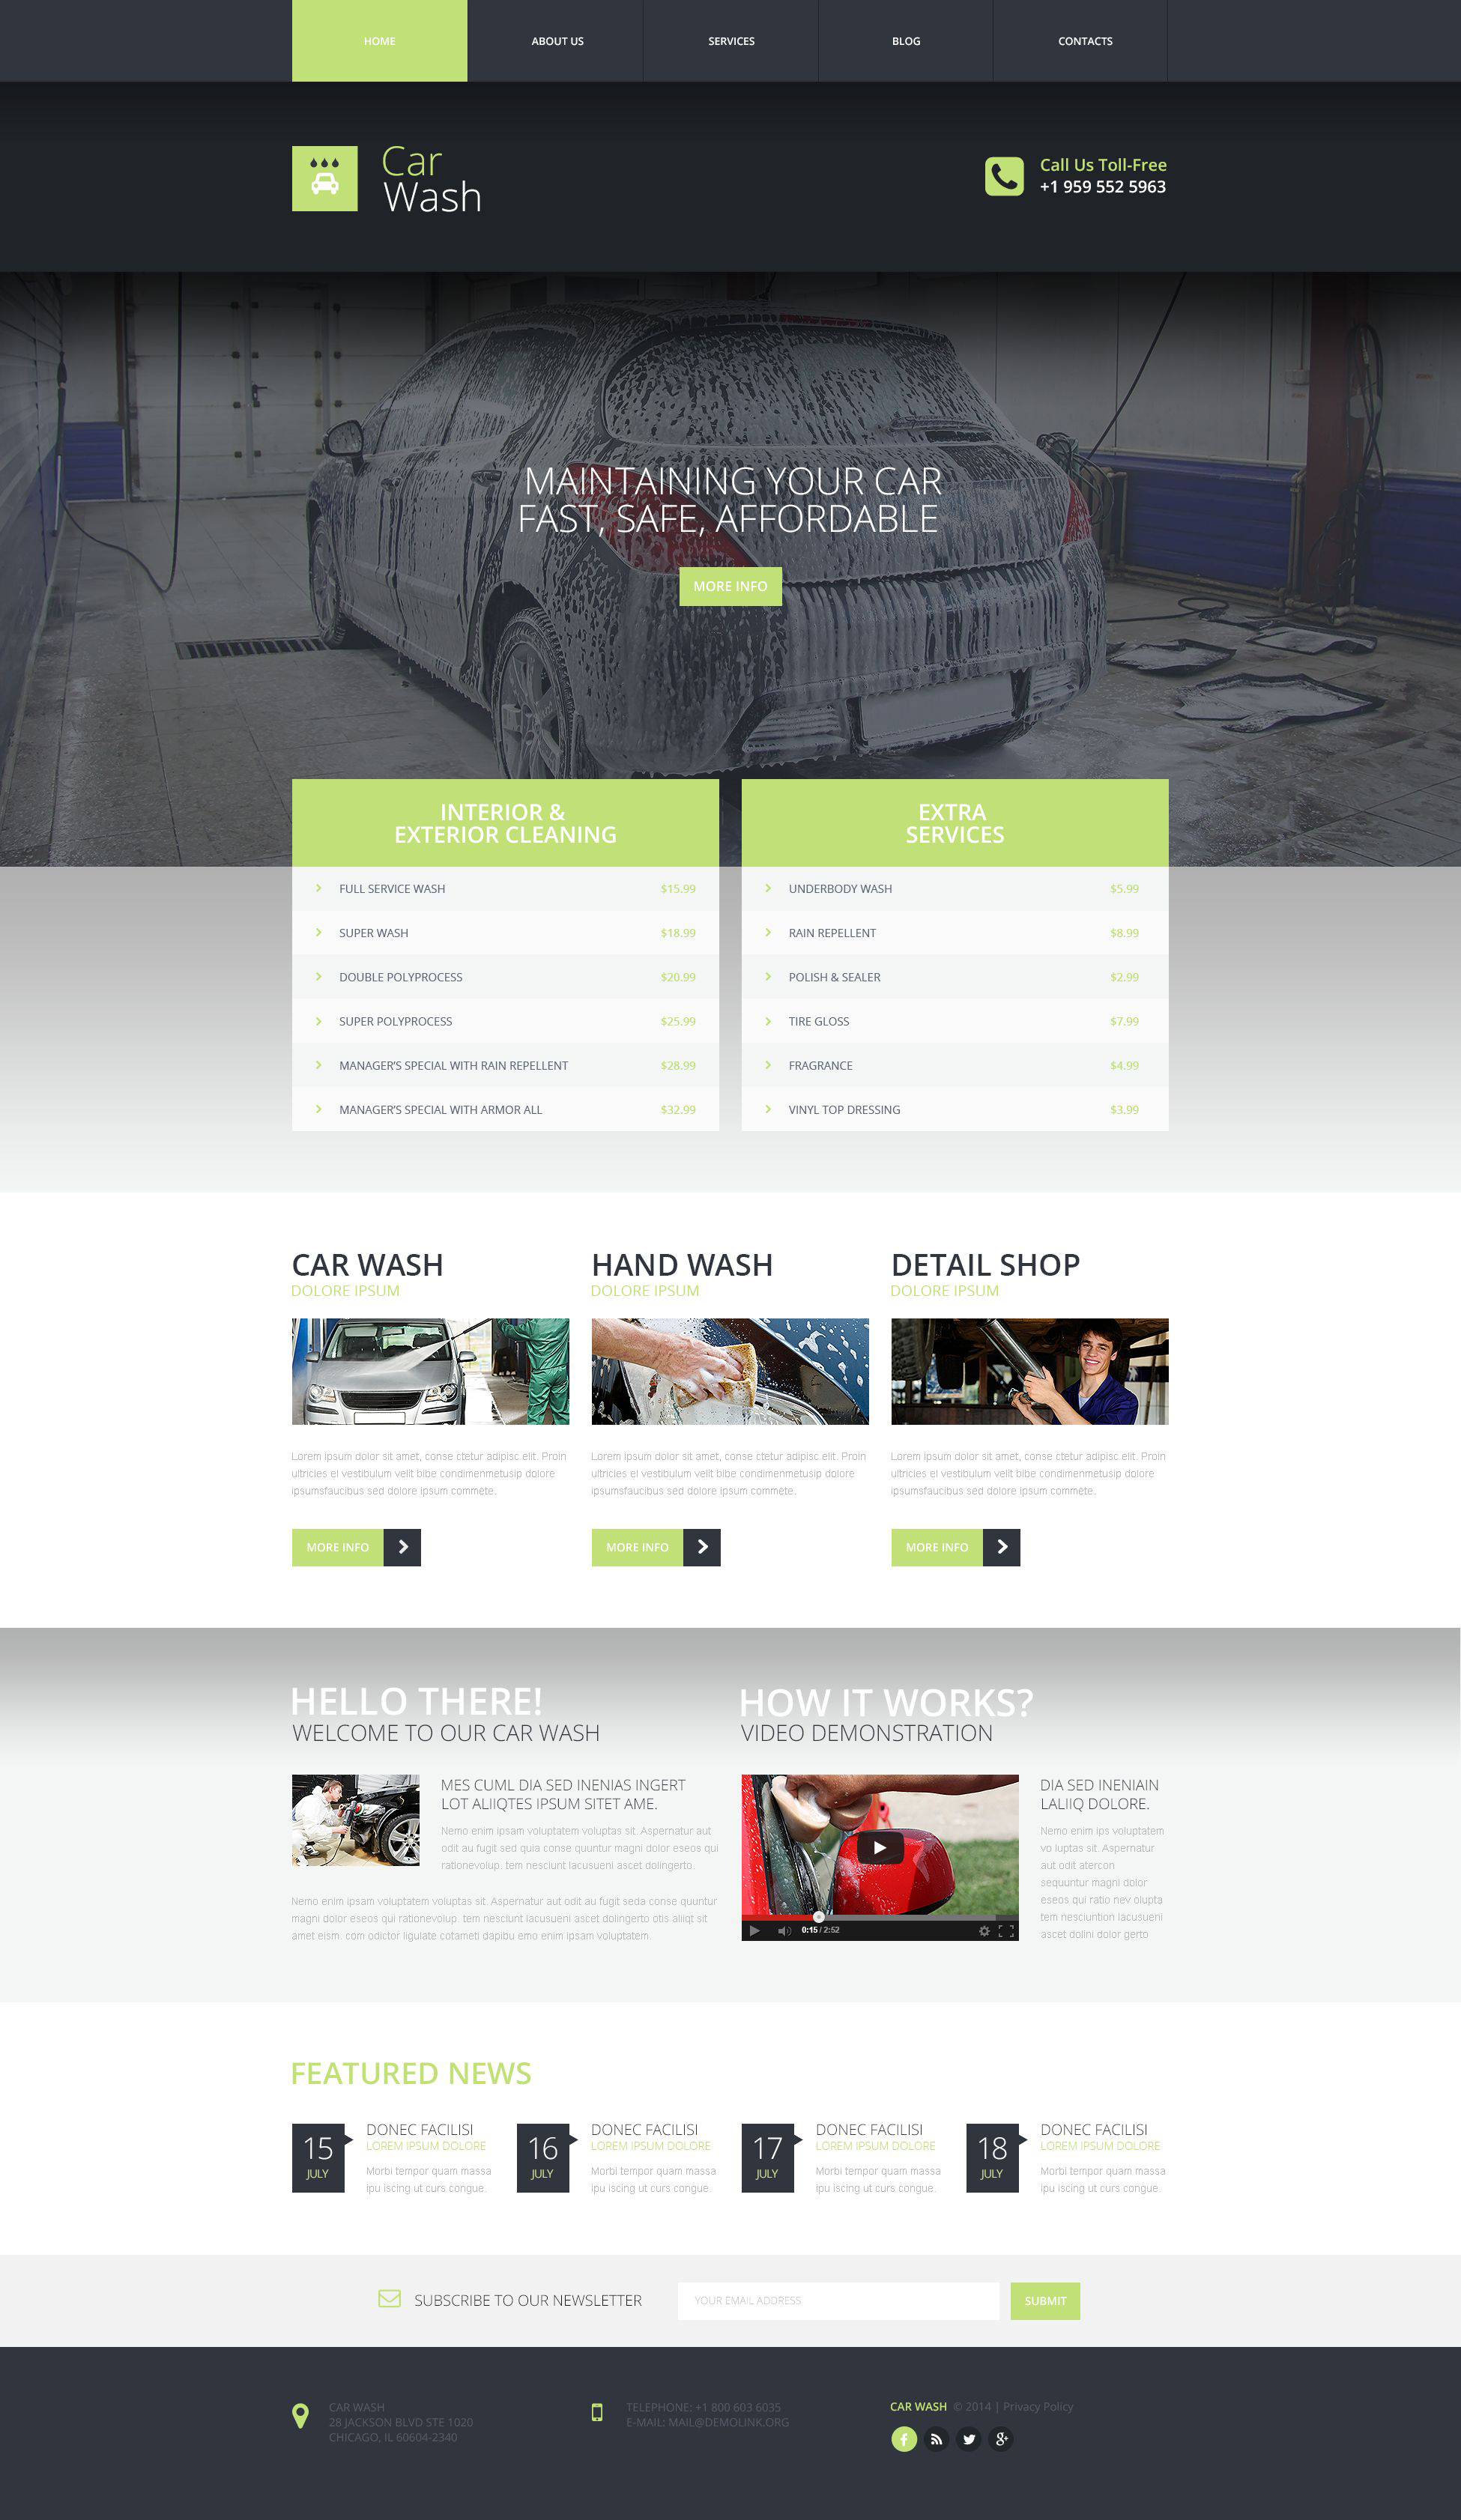 The Car Wash Center Responsive Javascript Animated Design 53652, one of the best website templates of its kind (cars, most popular), also known as Car wash center website template, washing website template, staff website template, cleaning website template, oil website template, lube salon website template, wheel website template, covers website template, rinsing website template, water website template, drying website template, soap website template, polish website template, chassis website template, dirty website template, dashboard website template, hoovering website template, seats website template, cleaning website template, brushes website template, service website template, coupons website template, fund-raising and related with Car wash center, washing, staff, cleaning, oil, lube salon, wheel, covers, rinsing, water, drying, soap, polish, chassis, dirty, dashboard, hoovering, seats, cleaning, brushes, service, coupons, fund-raising, etc.